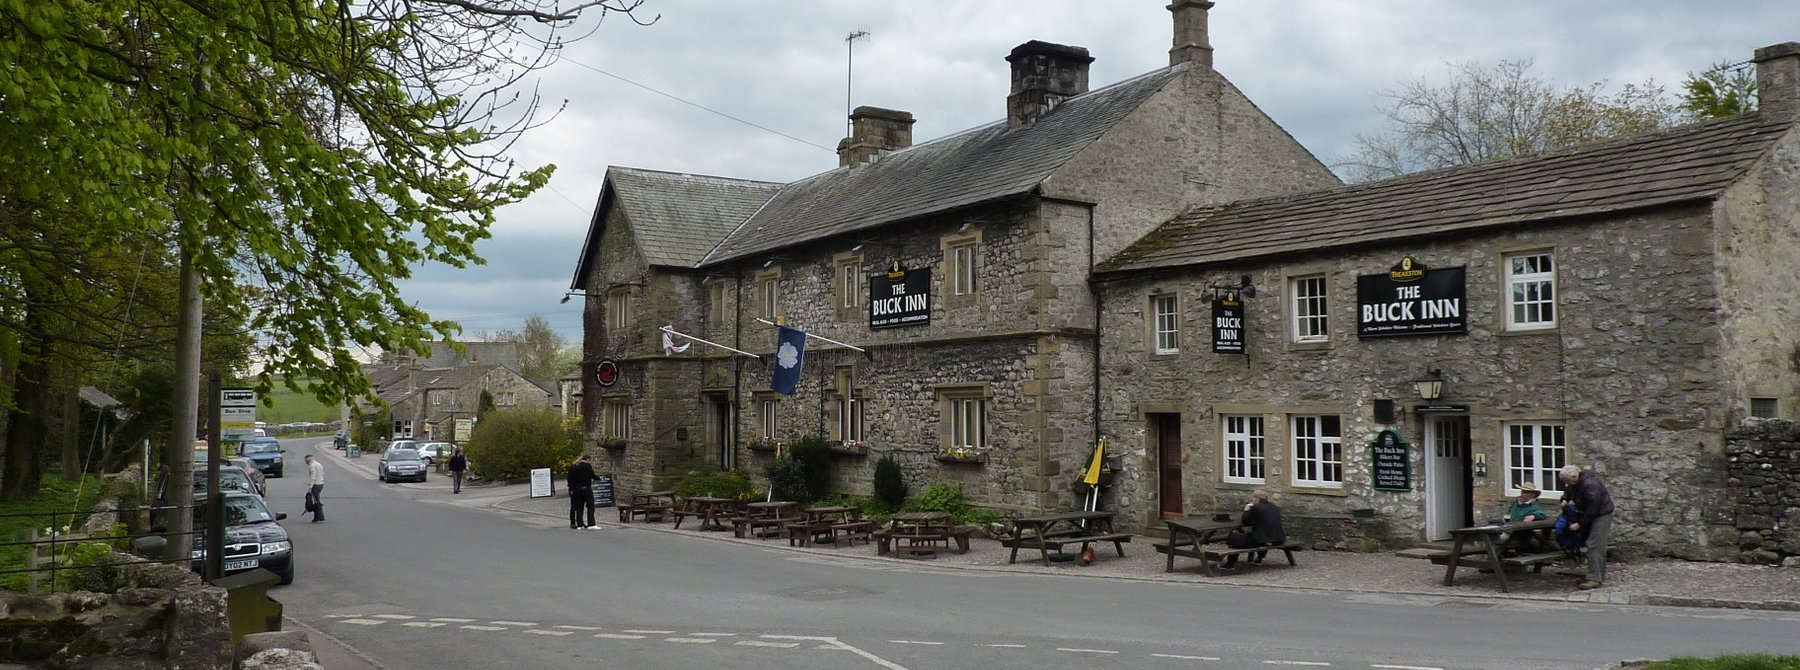 Malham village and the Buck Inn